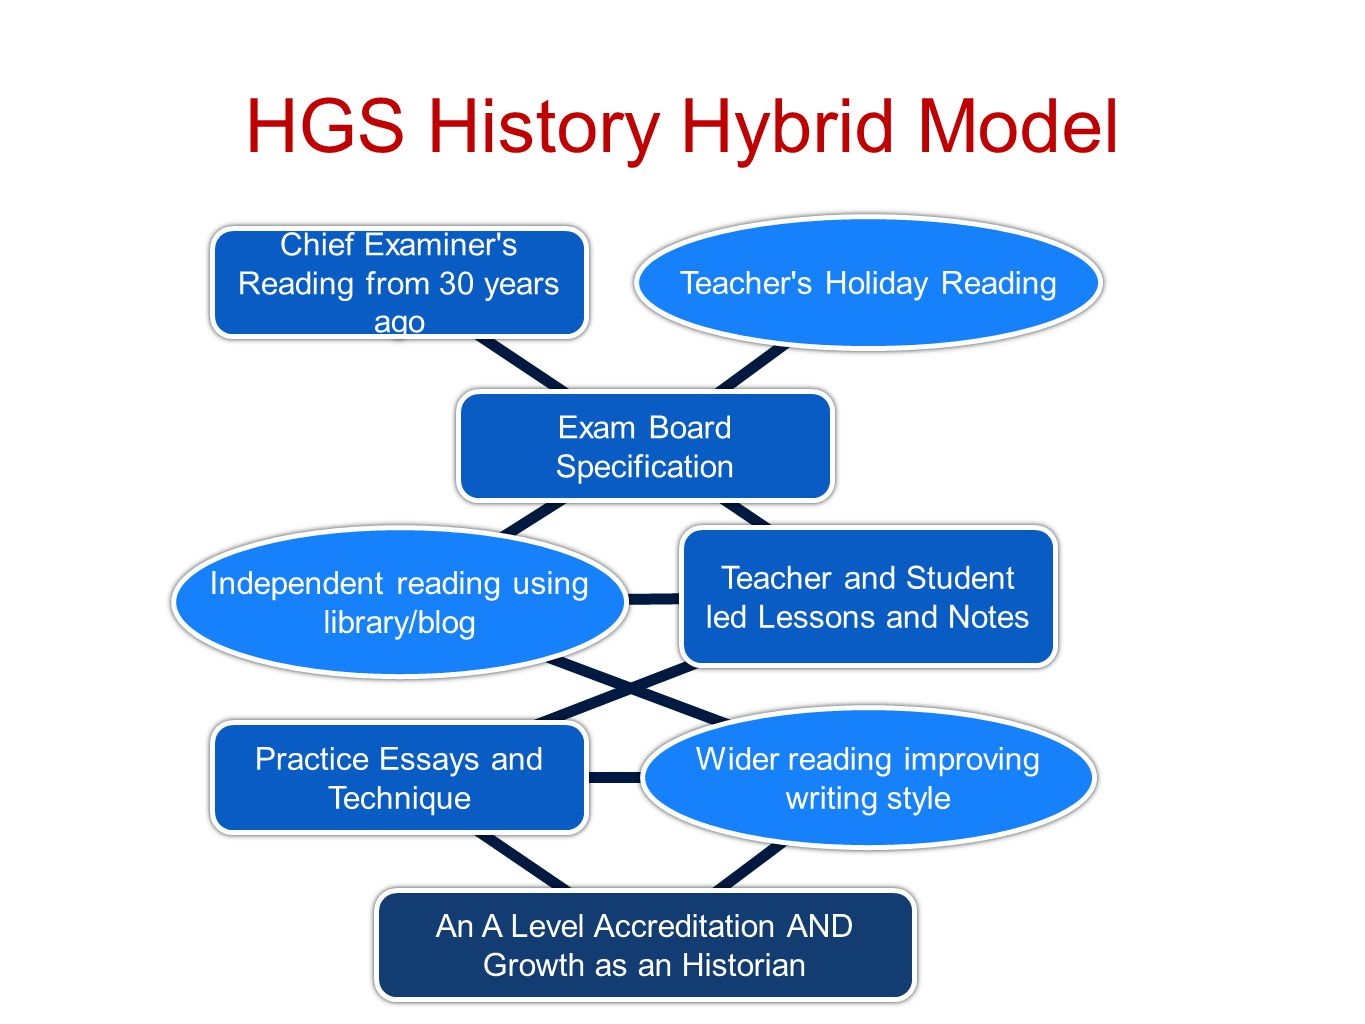 HGS History Hybrid Model History teaching with passion Chief Examiner s Reading from 30 years ago Exam Board Specification Teacher and Student led Lessons and Notes Practice Essays and Technique An A Level Accreditation AND Growth as an Historian Teacher s Holiday Reading Wider reading improving writing style Independent reading using library/blog